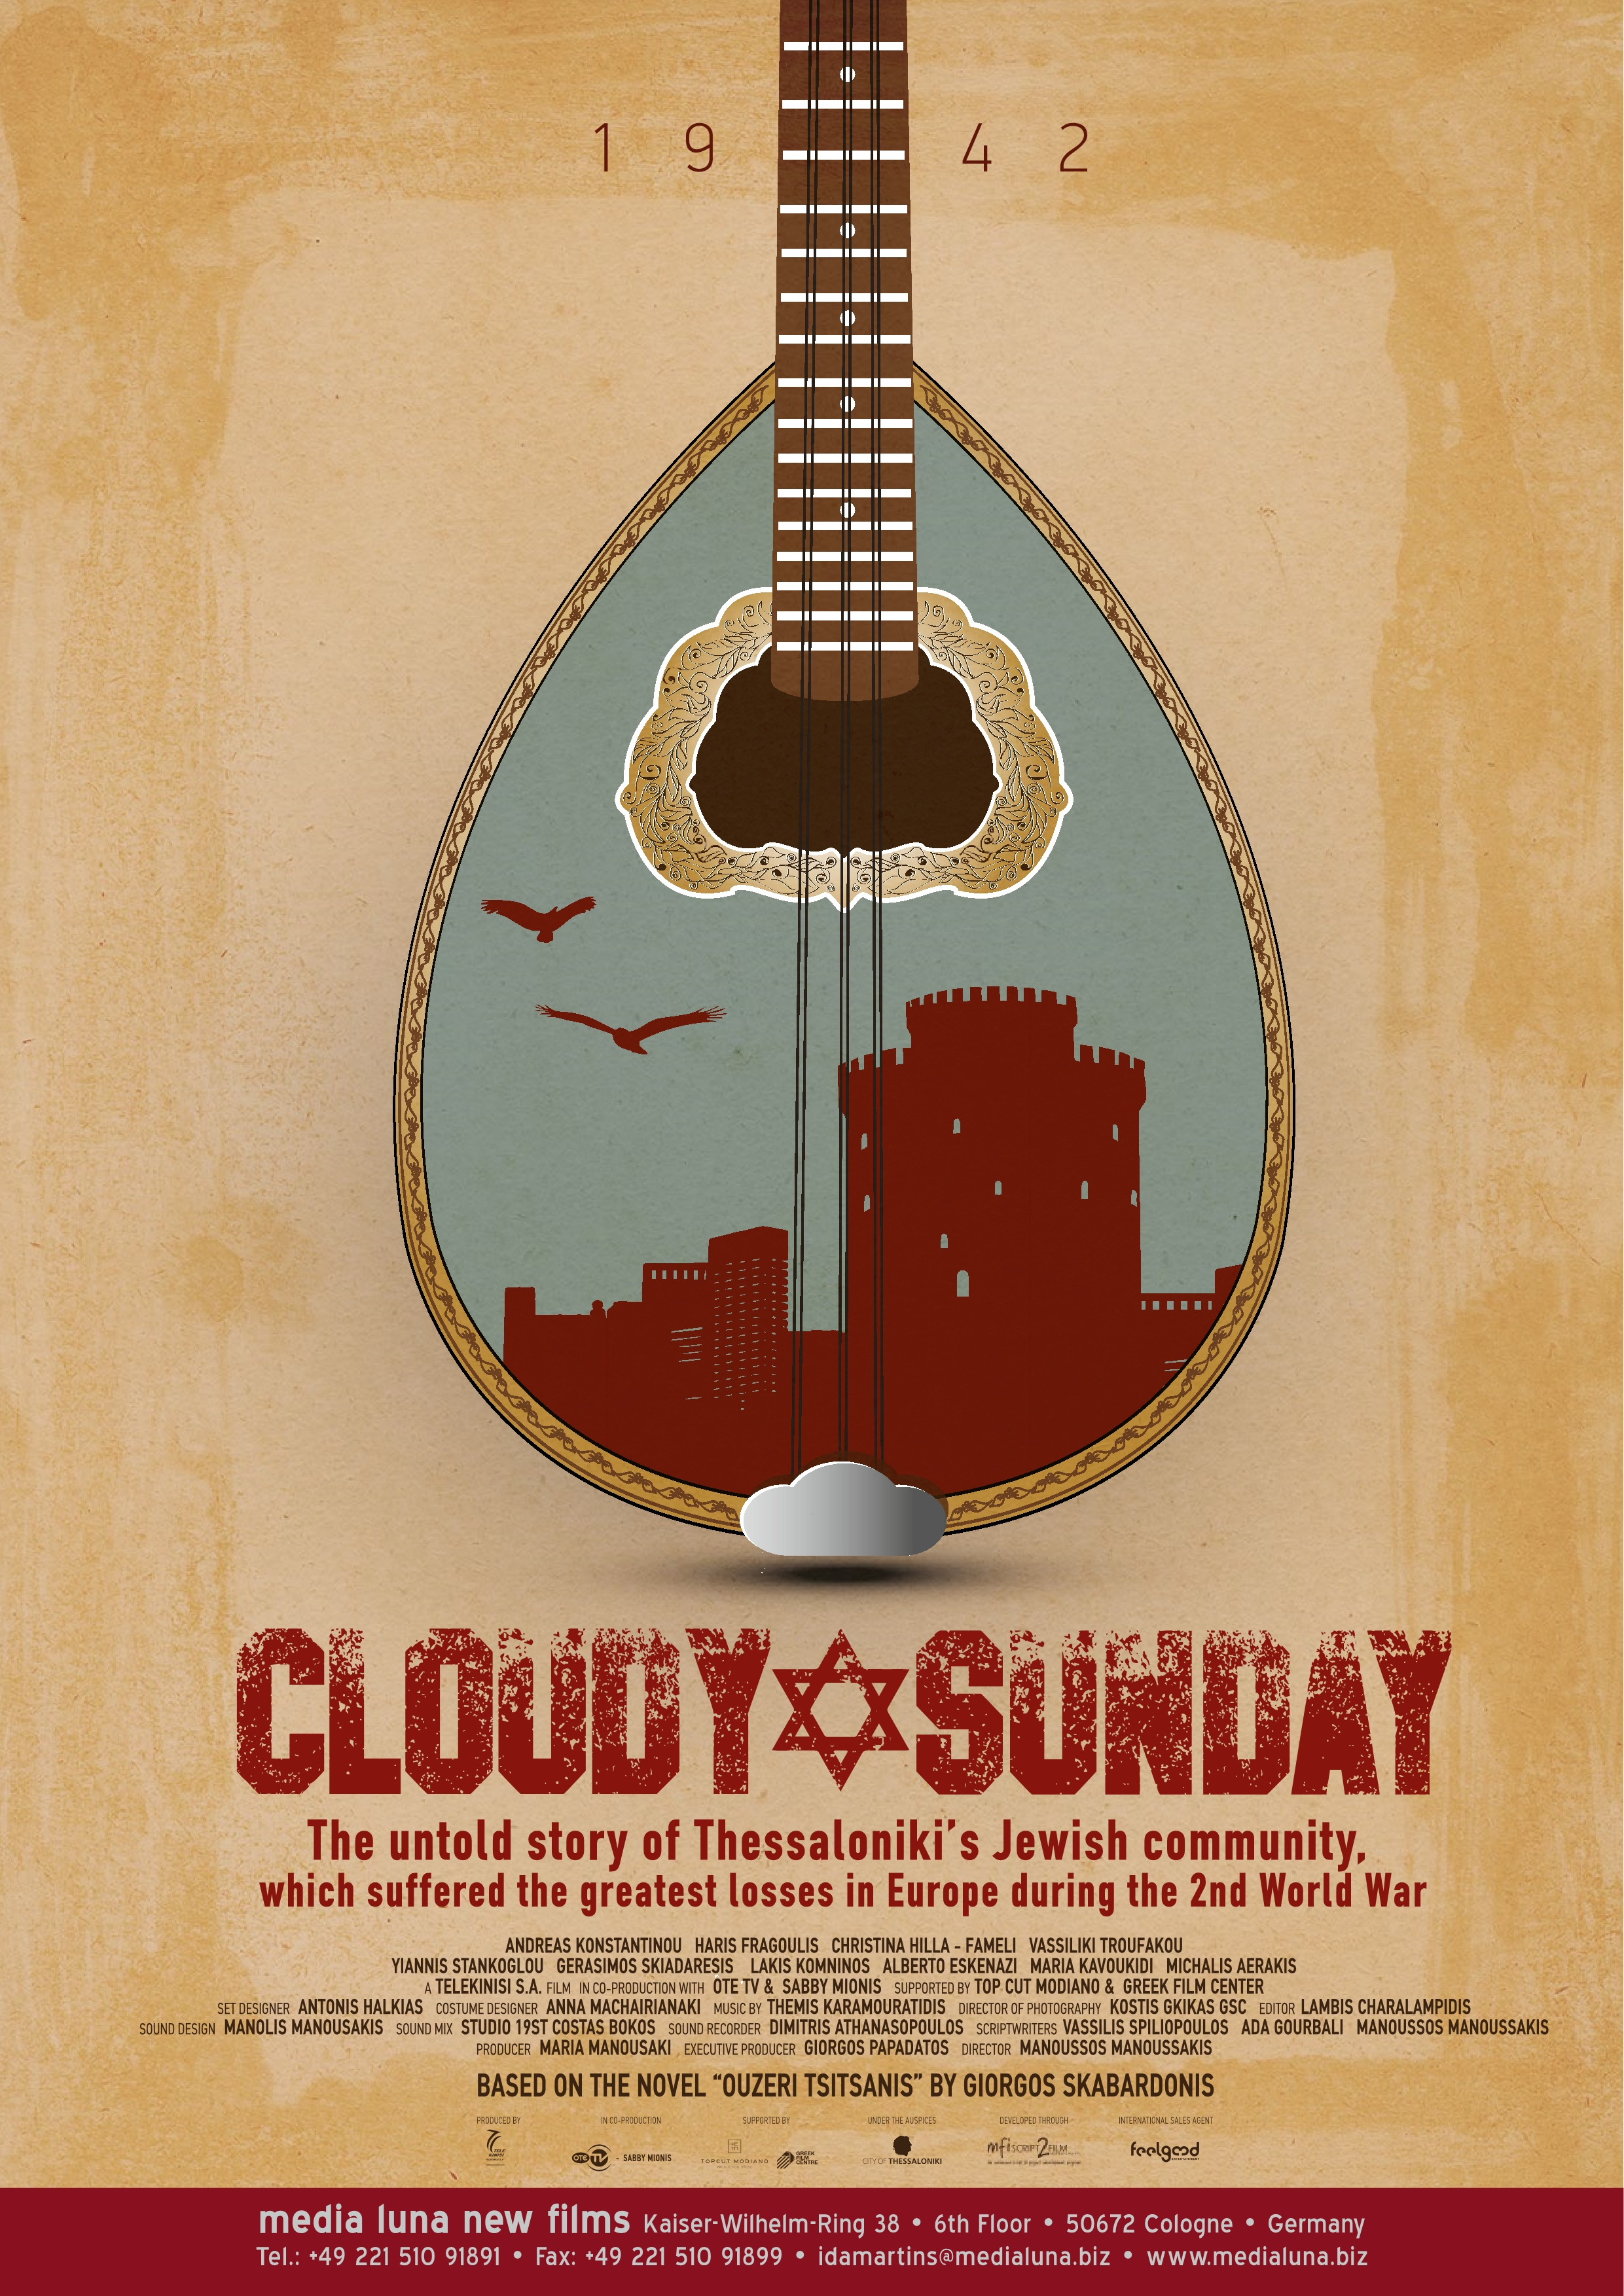 Cloudy Sunday_Flyer_Lay_A (2)1.jpg